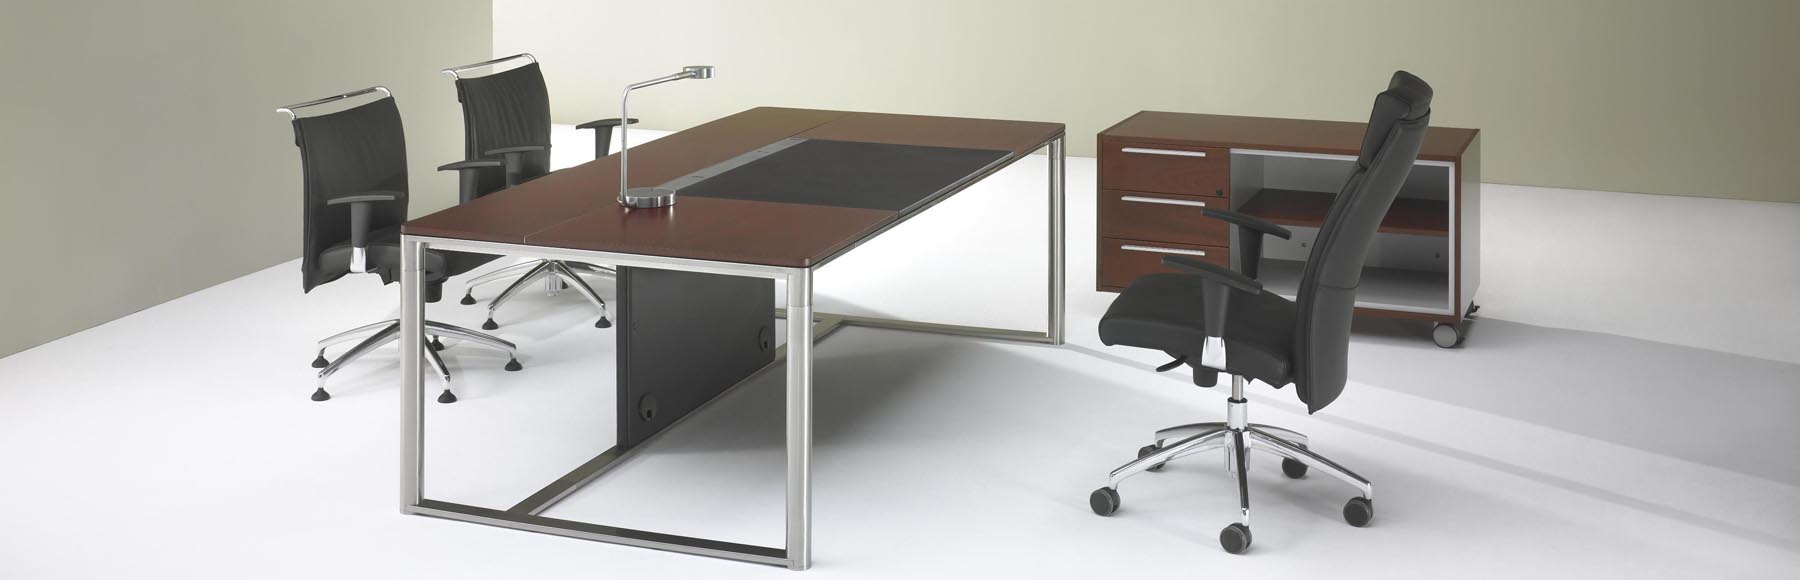 Executive Desks & Tables